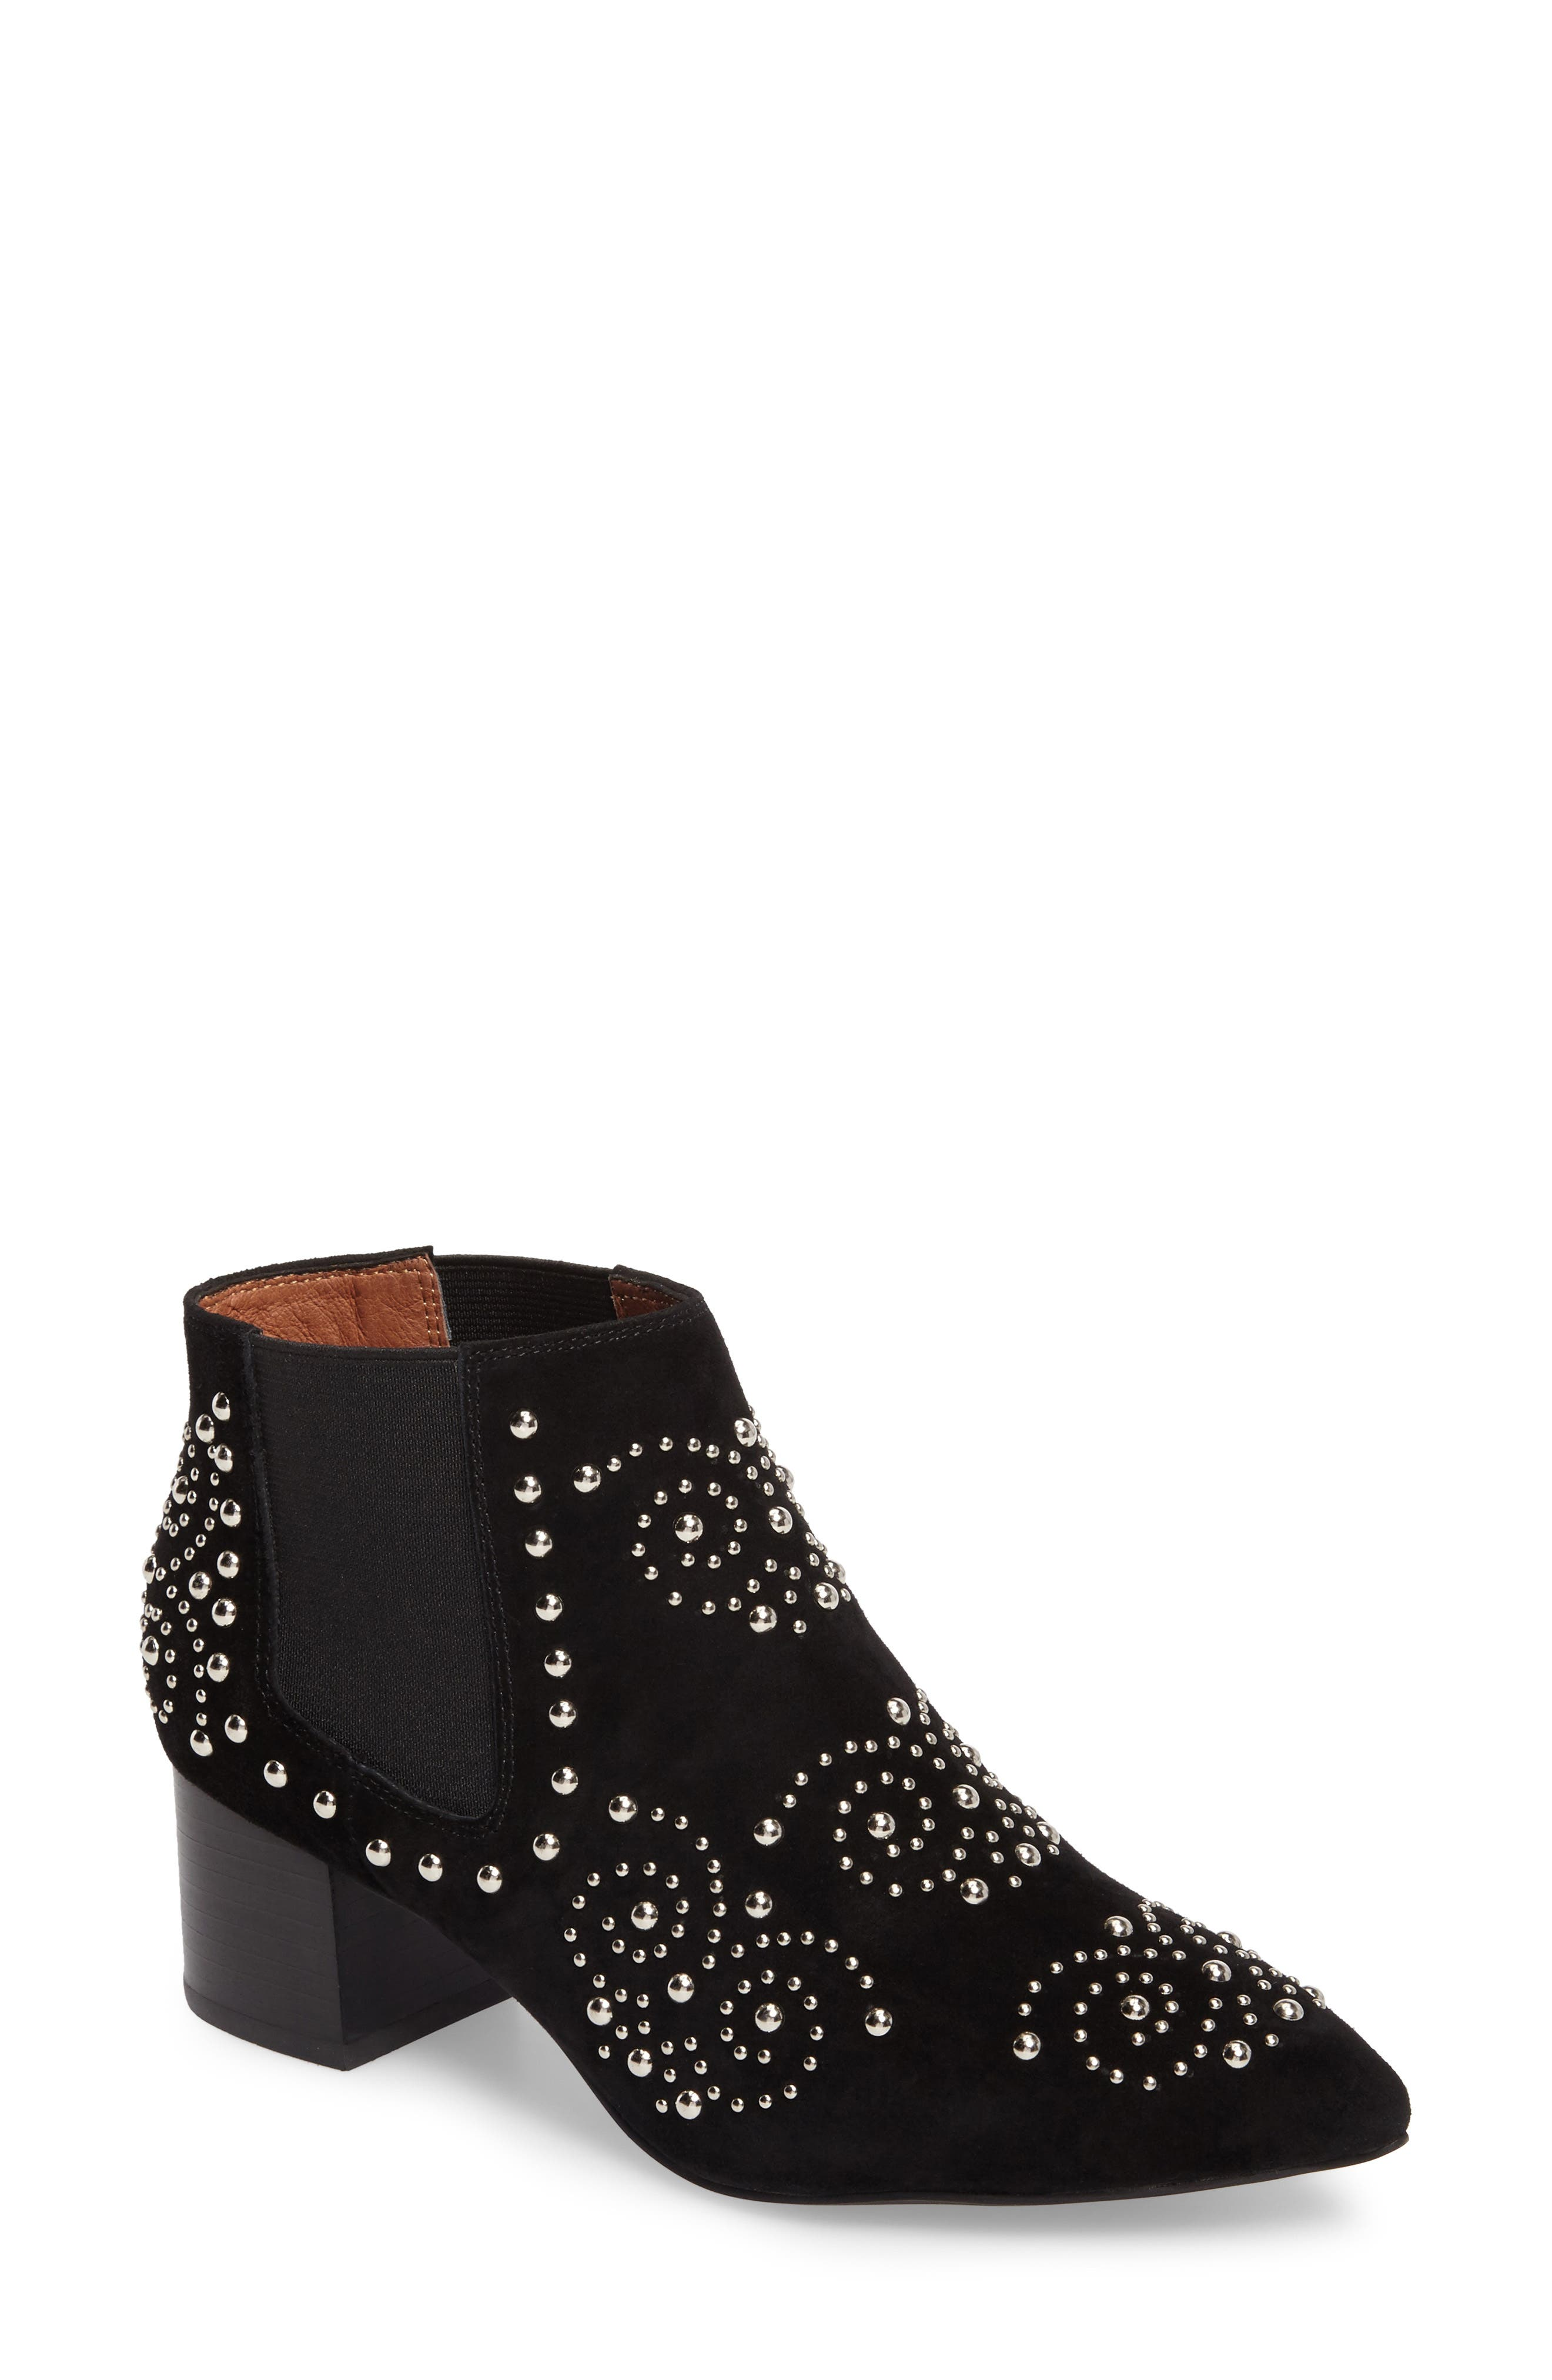 Mulvain Studded Bootie,                             Main thumbnail 1, color,                             Black Suede